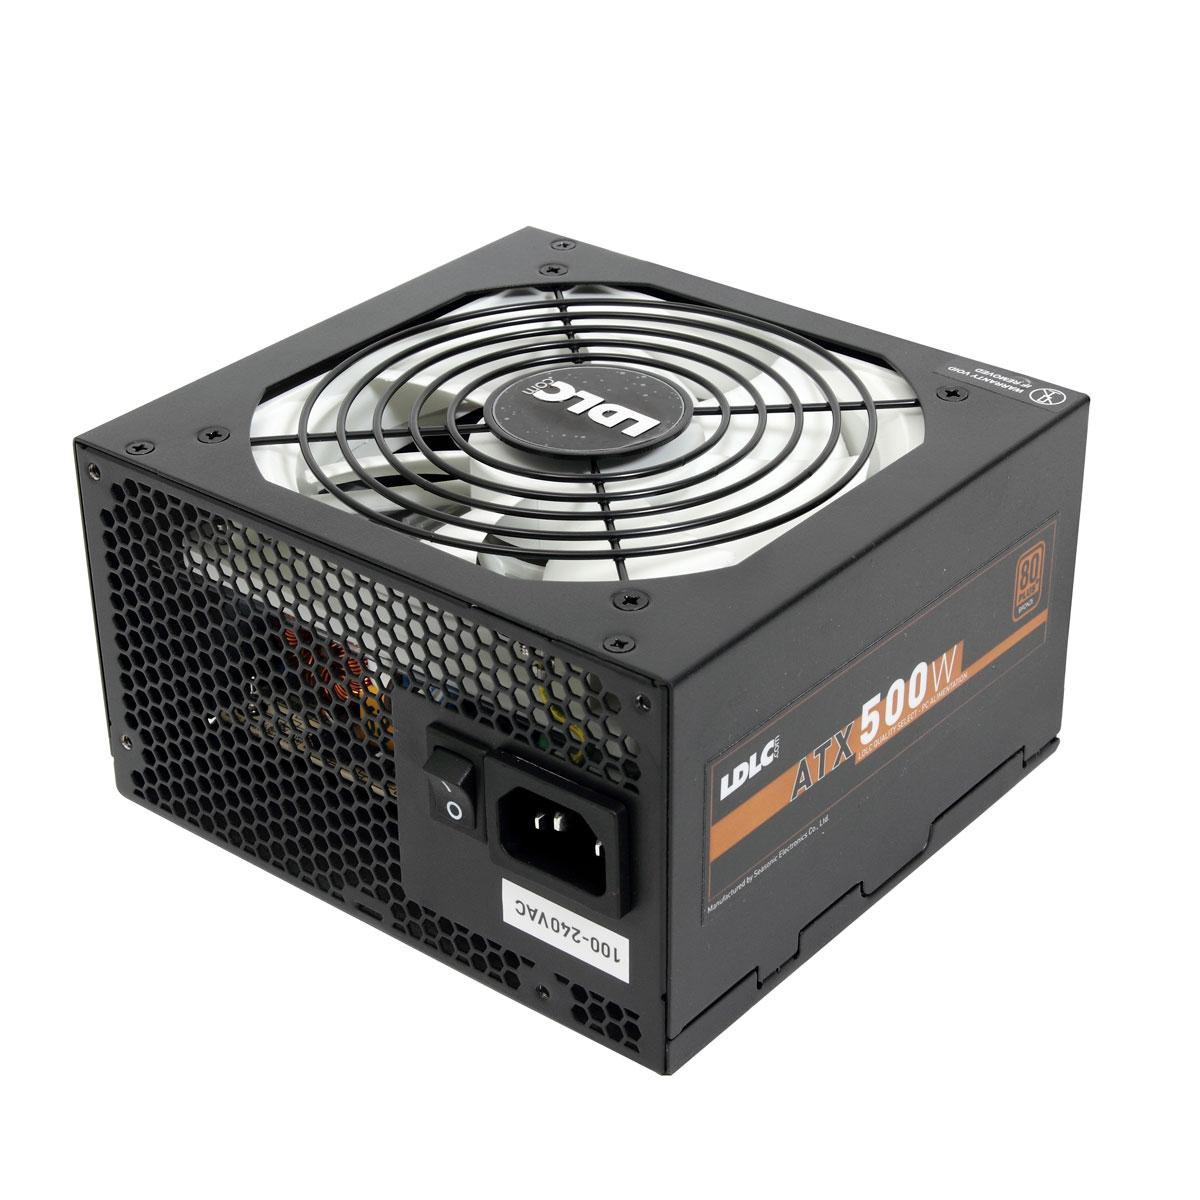 Alimentation LDLC 500watts